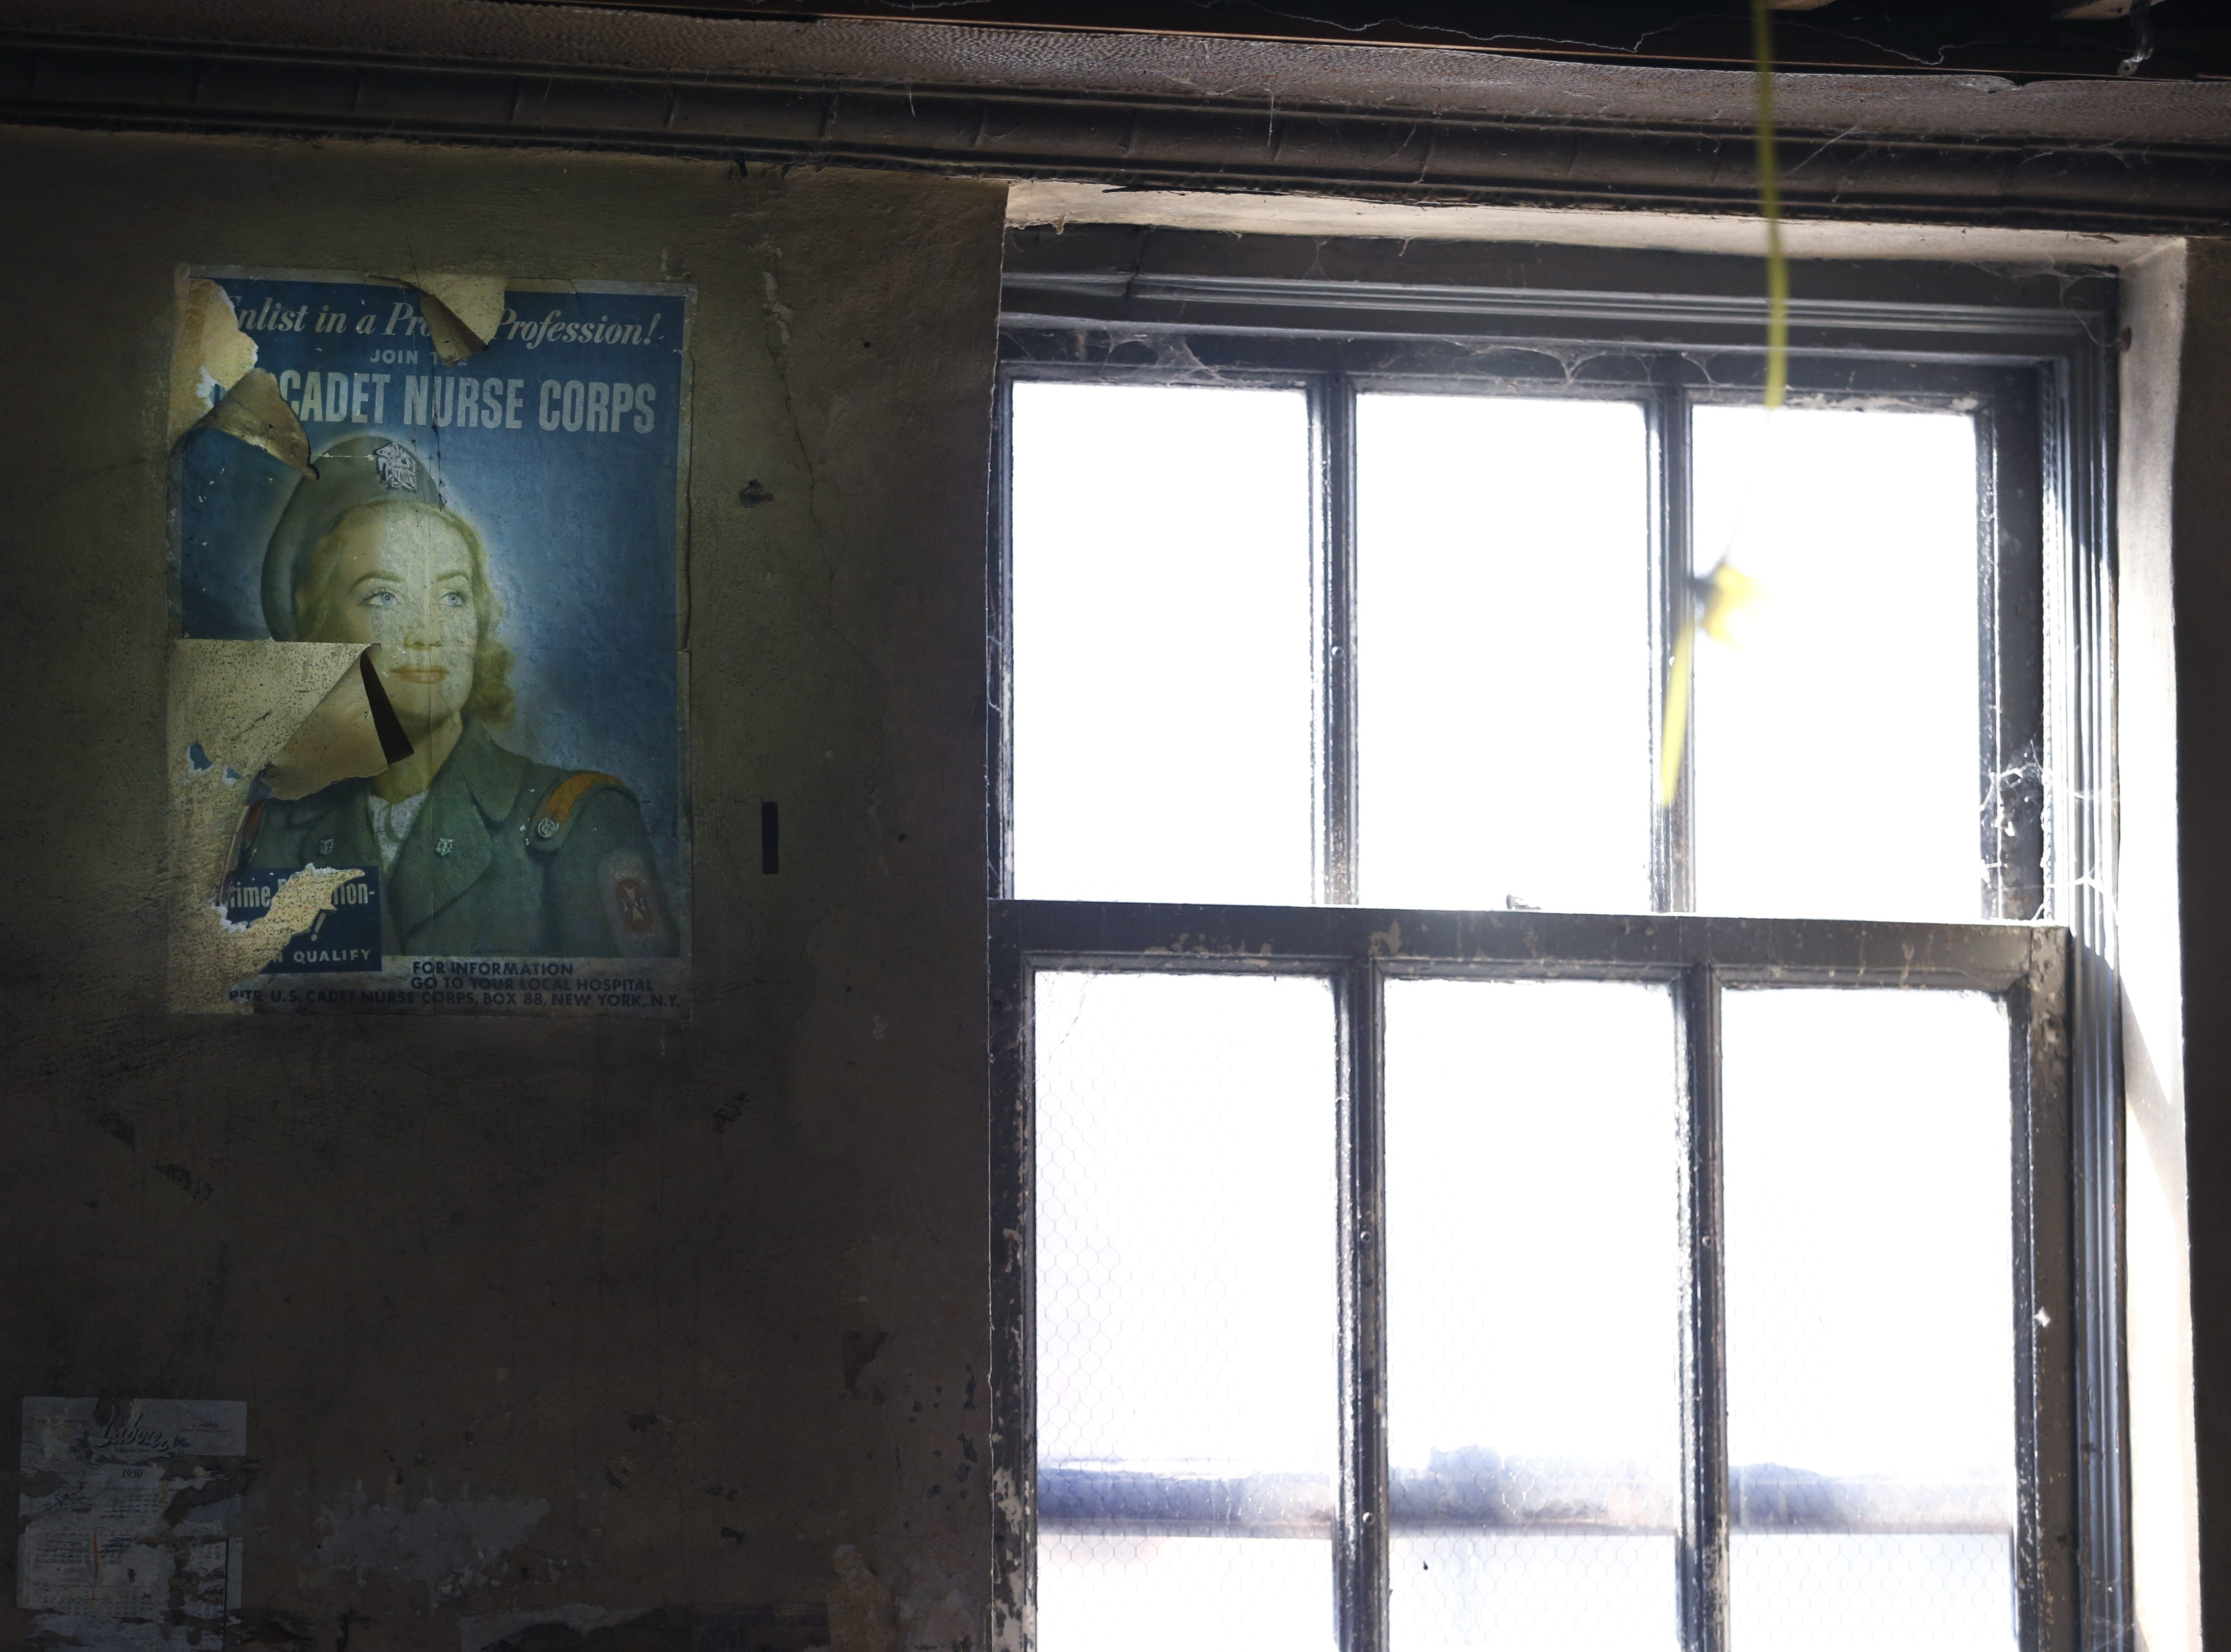 A World War II-era poster still hangs on the wall on an upper floor of the vacant building being redeveloped at 190 E. Main St.